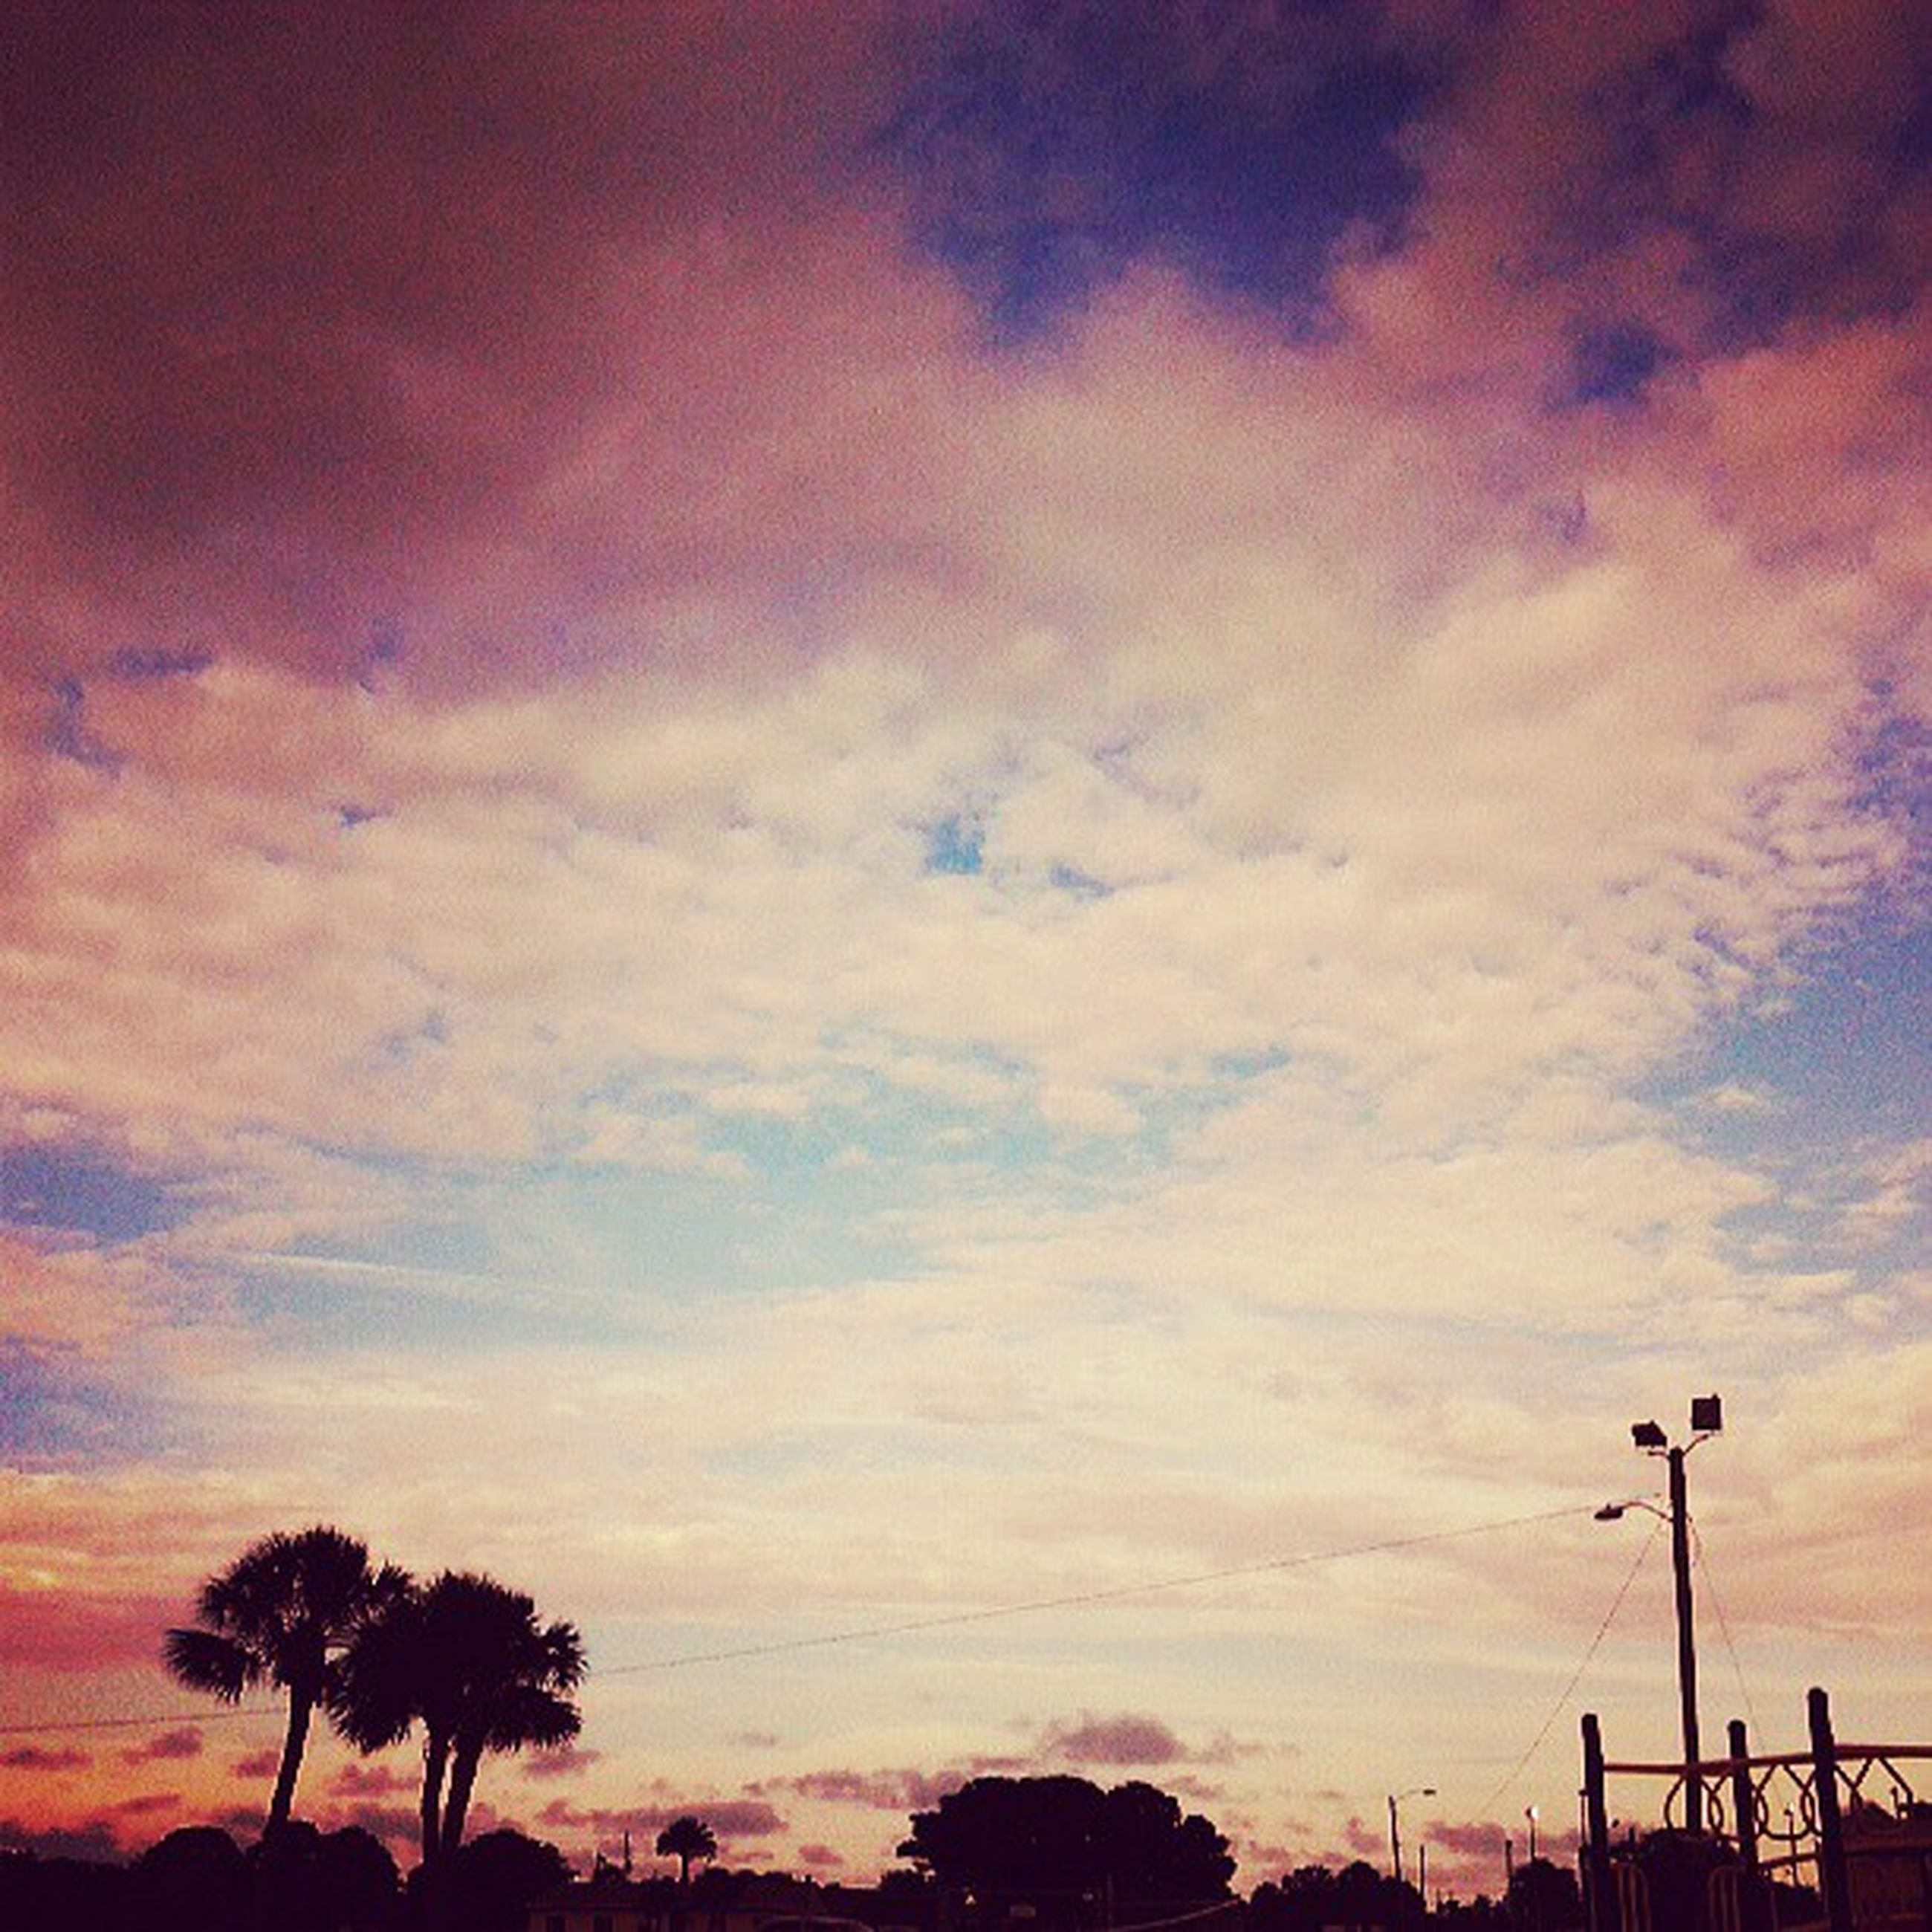 sunset, sky, silhouette, tree, beauty in nature, tranquility, scenics, cloud - sky, low angle view, tranquil scene, nature, orange color, cloud, cloudy, idyllic, dramatic sky, street light, dusk, palm tree, outdoors